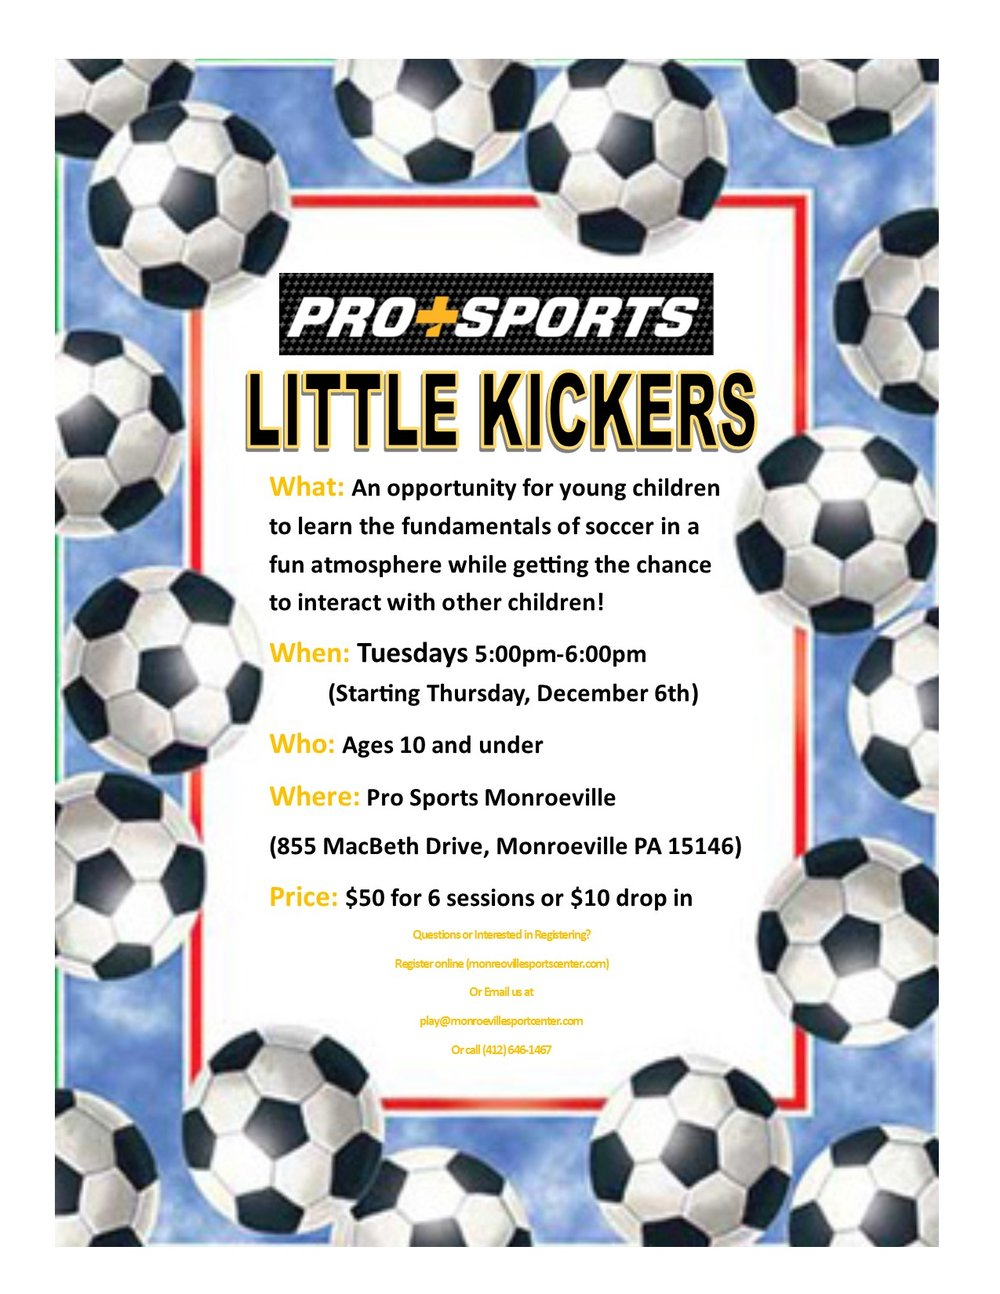 Littlekickers.jpg